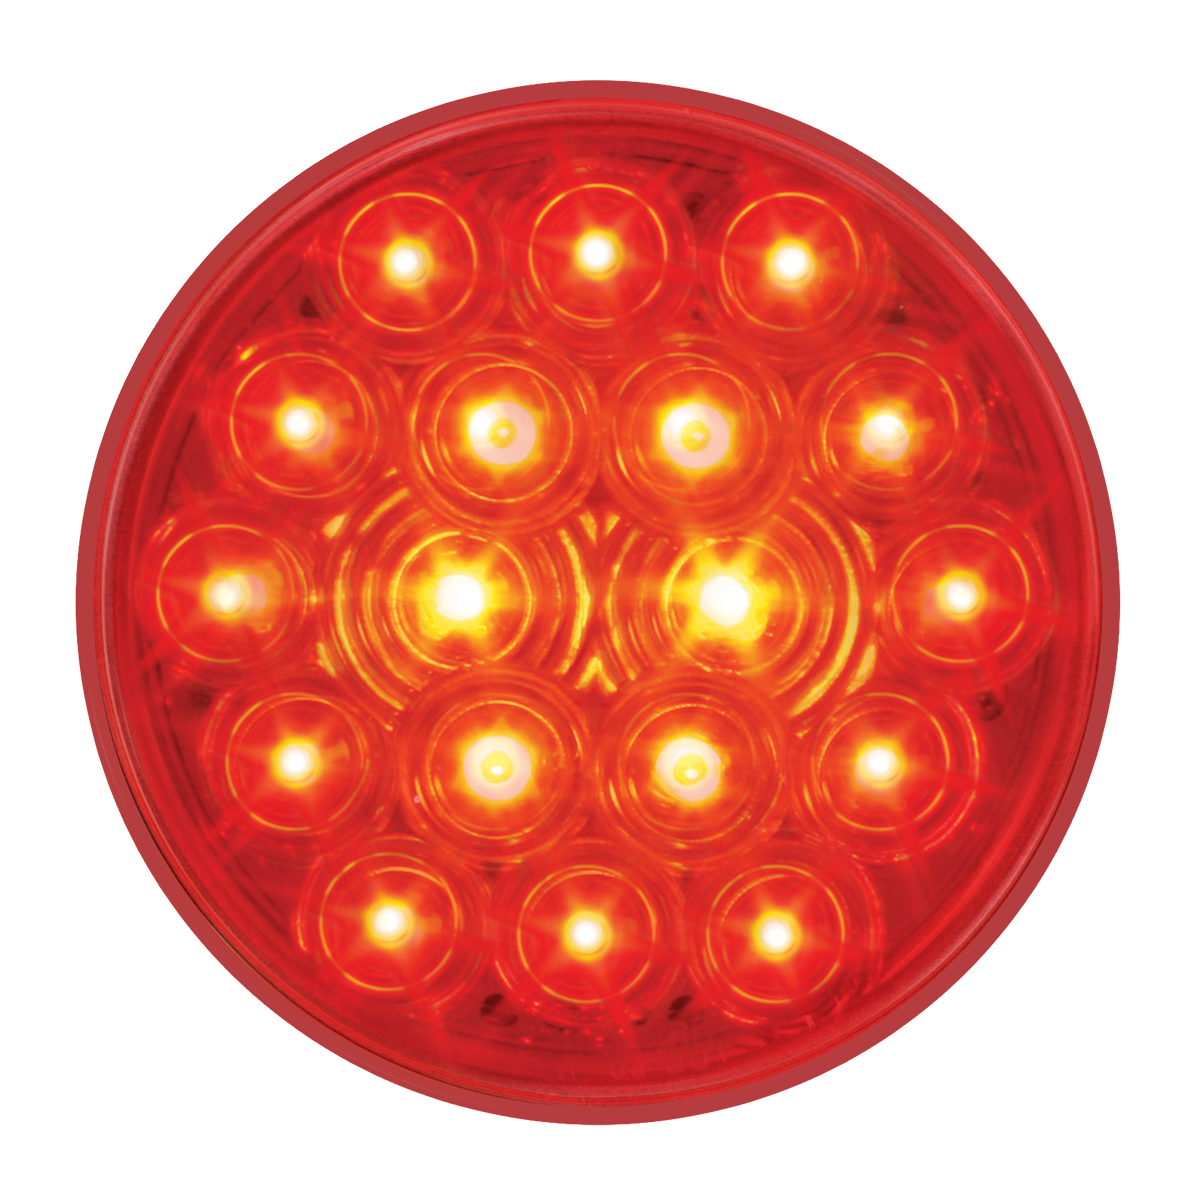 "#76452 4"" Round Fleet LED Flat Red/Red Light"